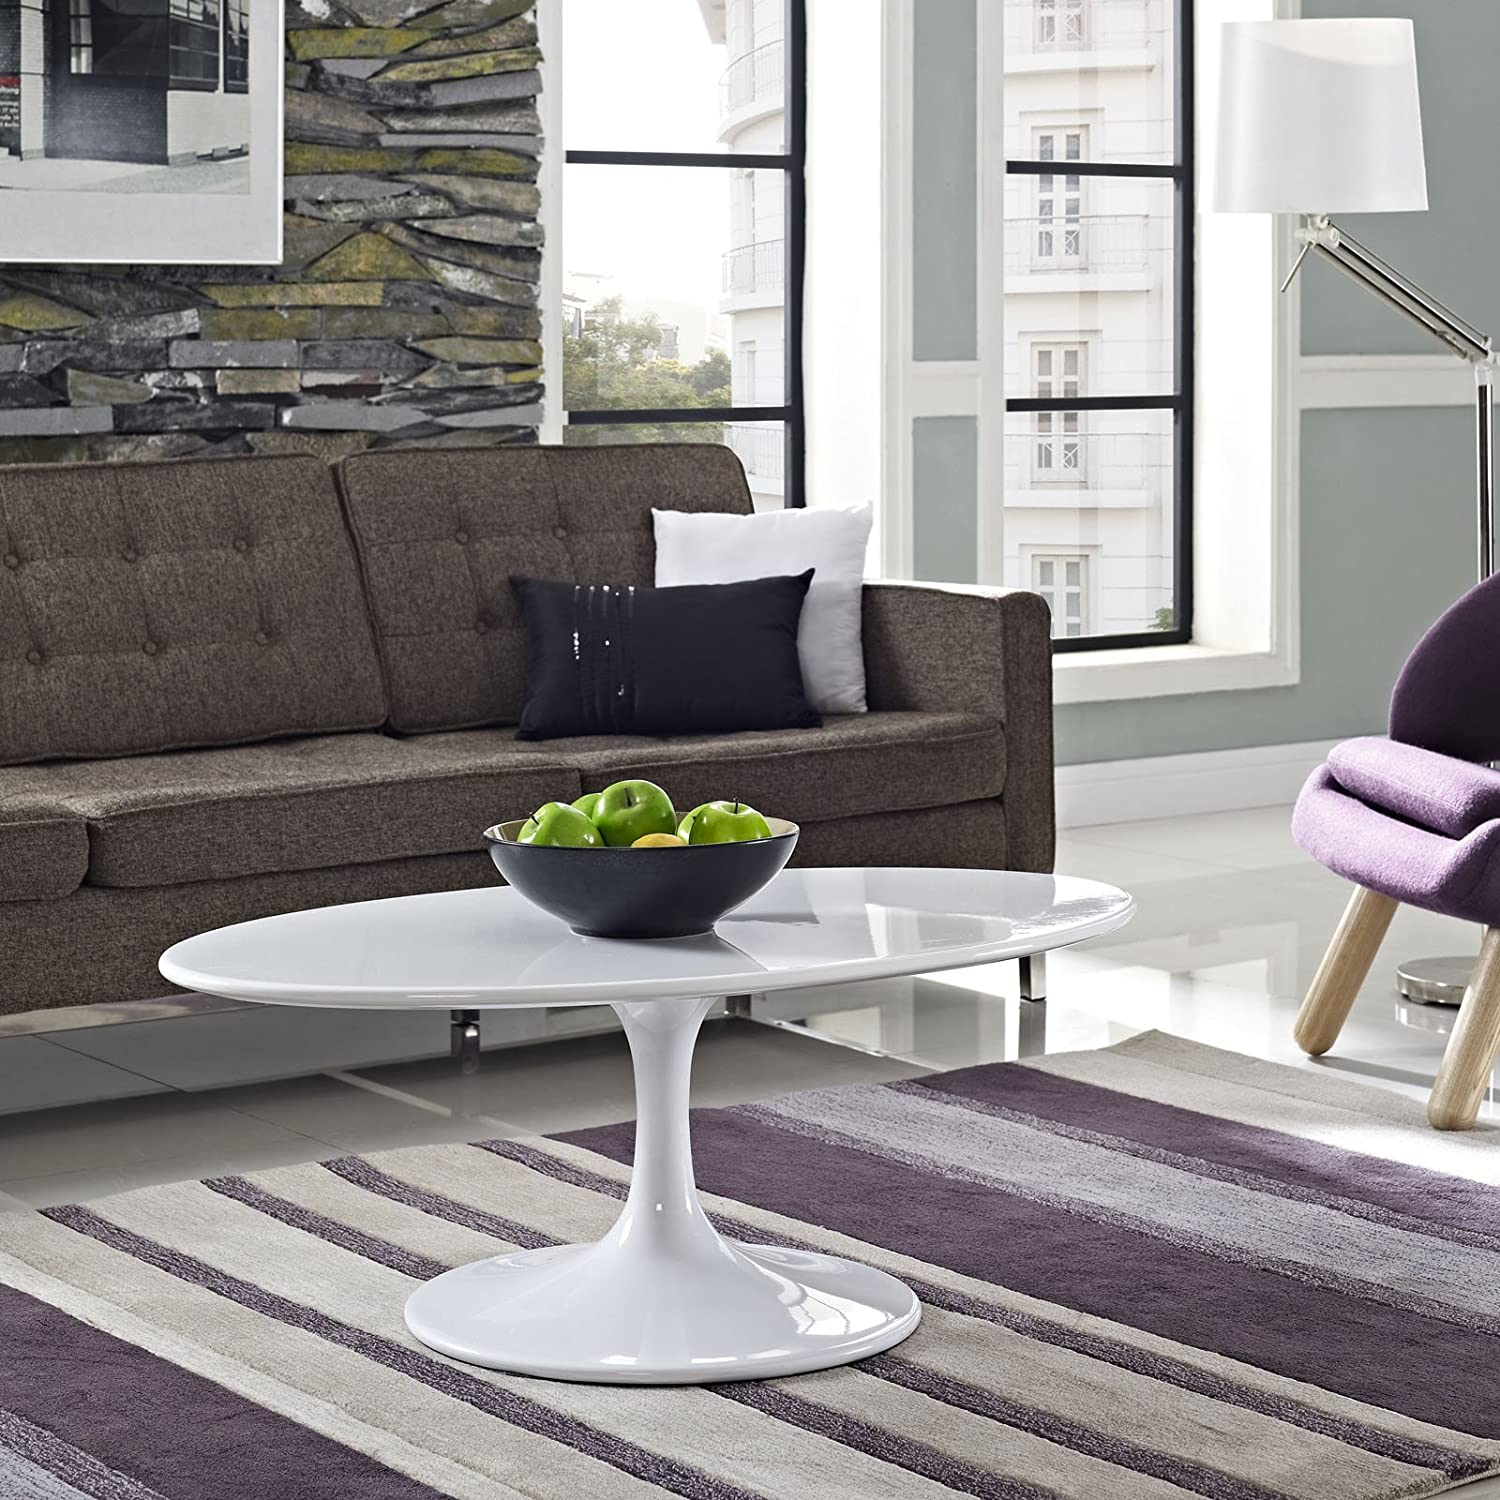 Amazon modway lippa 42 oval shaped wood top coffee table in amazon modway lippa 42 oval shaped wood top coffee table in white kitchen dining geotapseo Images